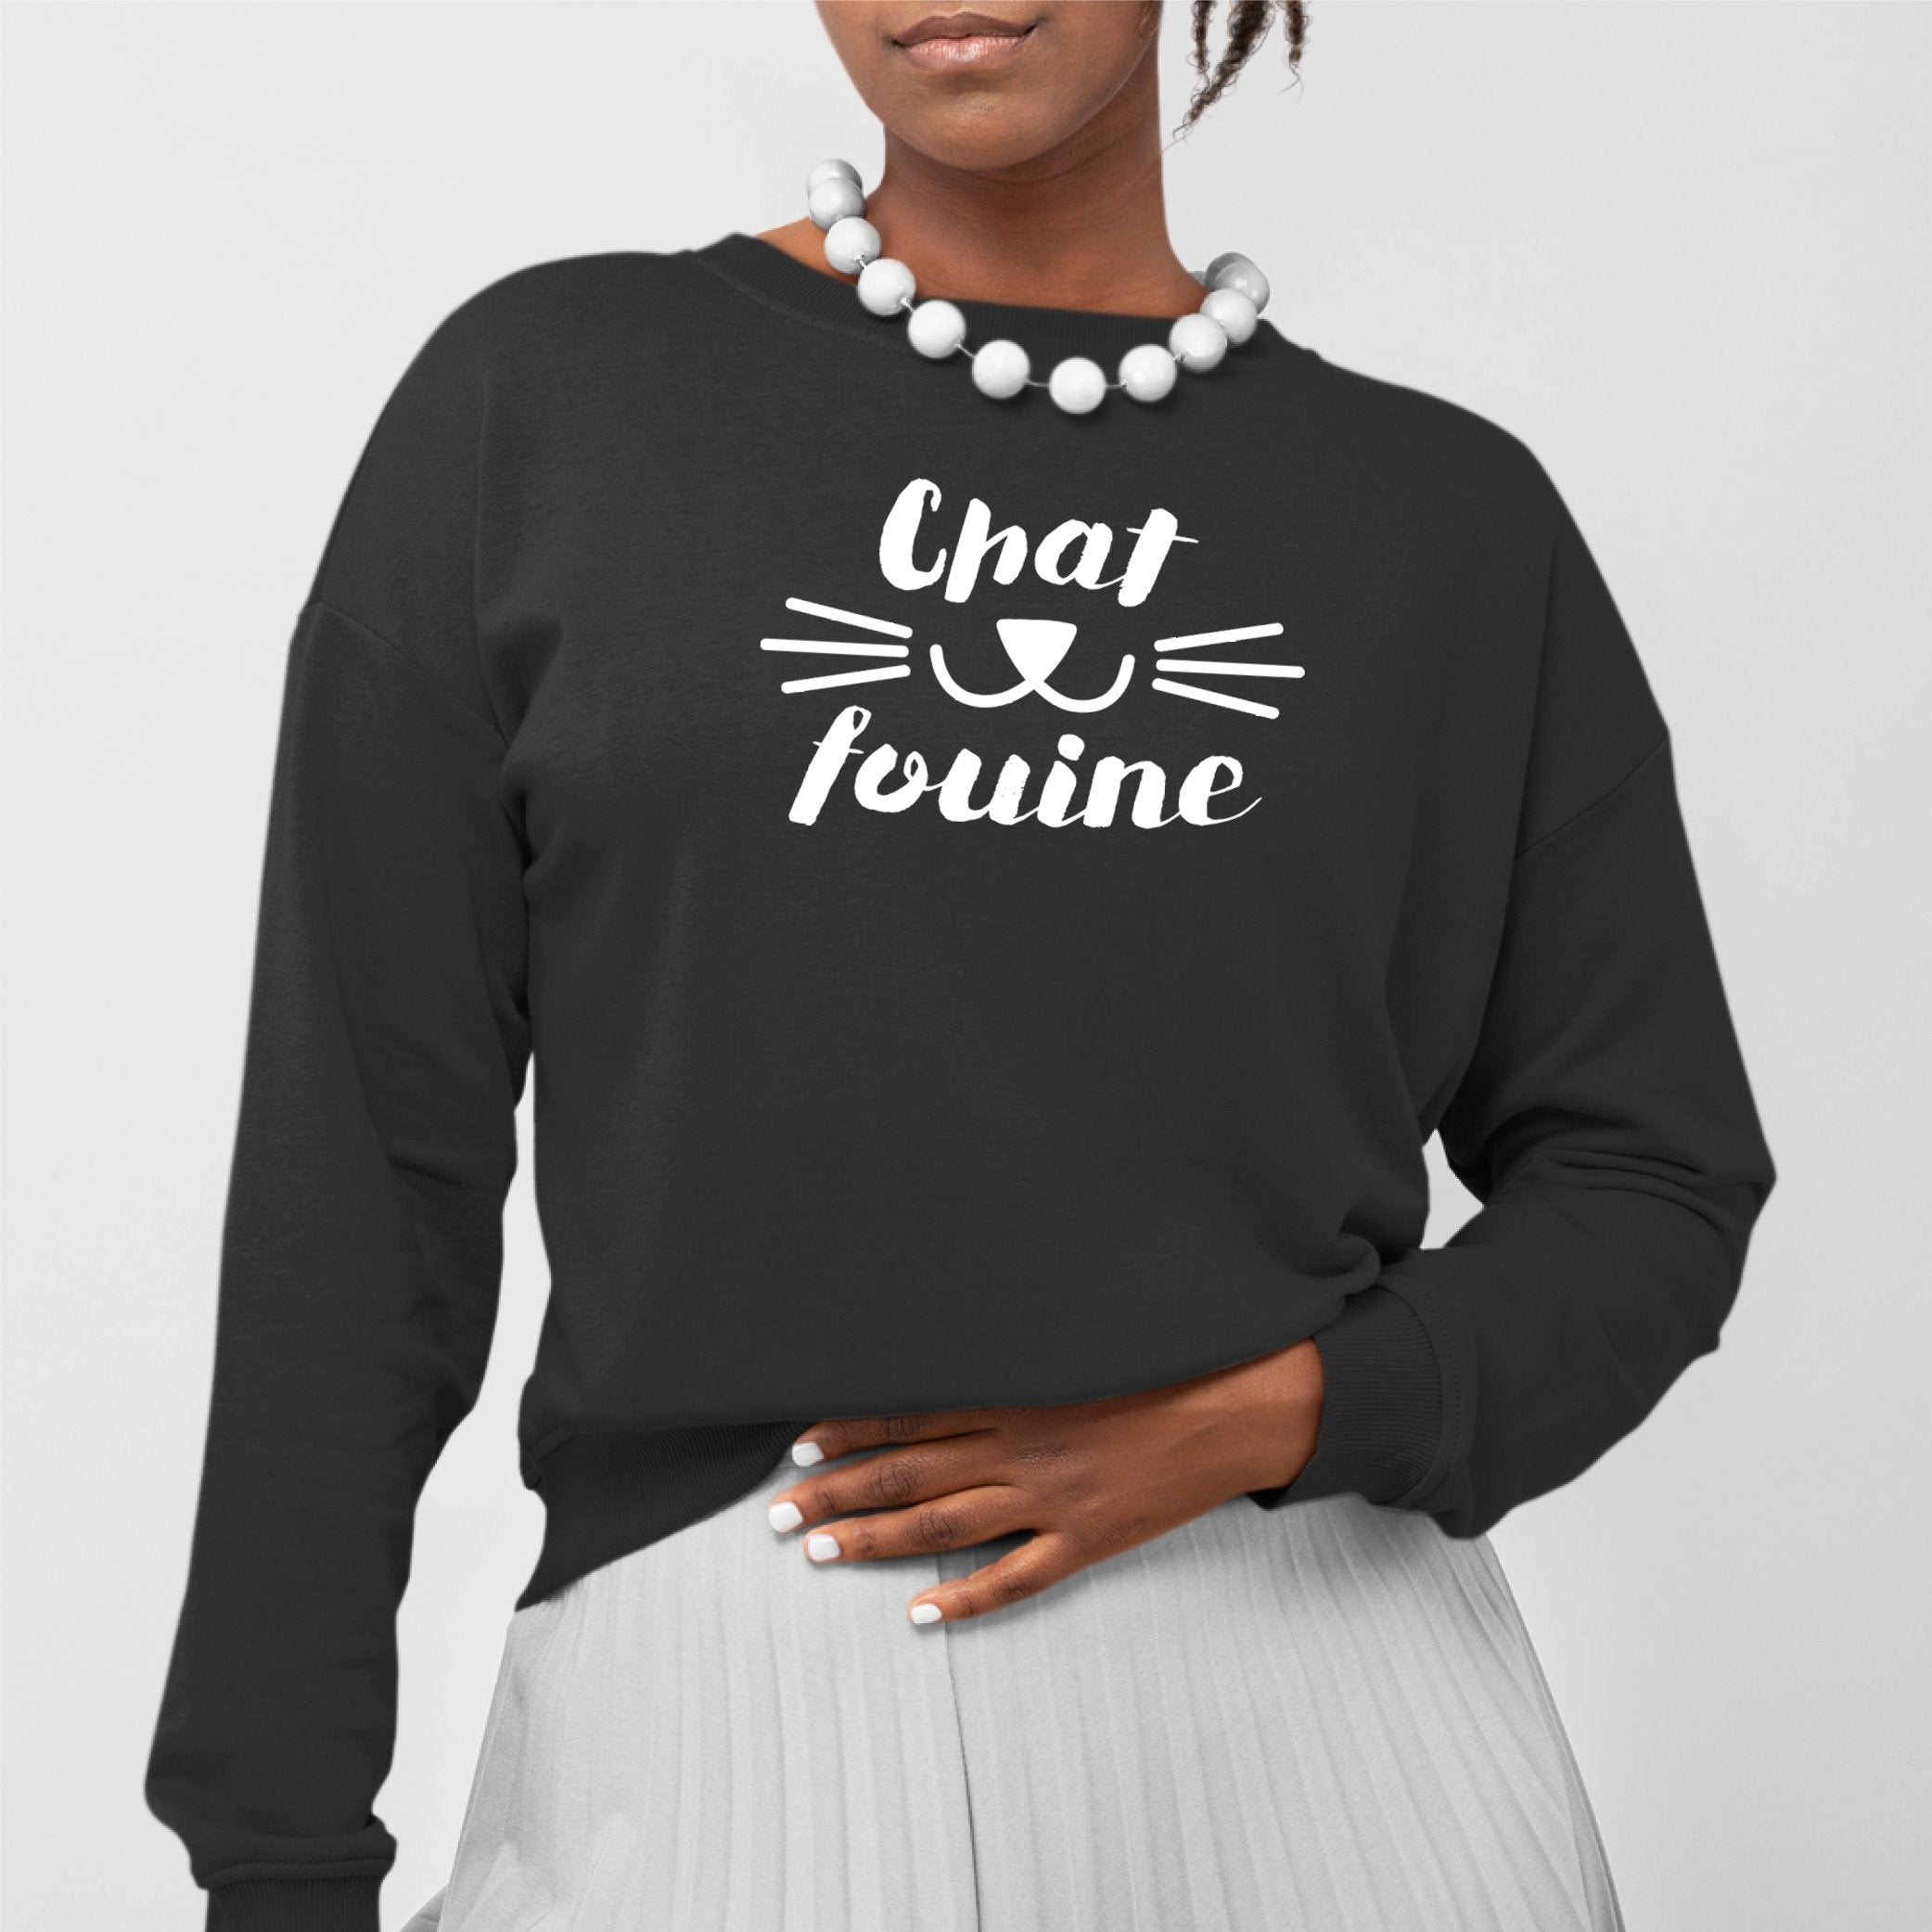 Sweat Adulte Chafouine Noir